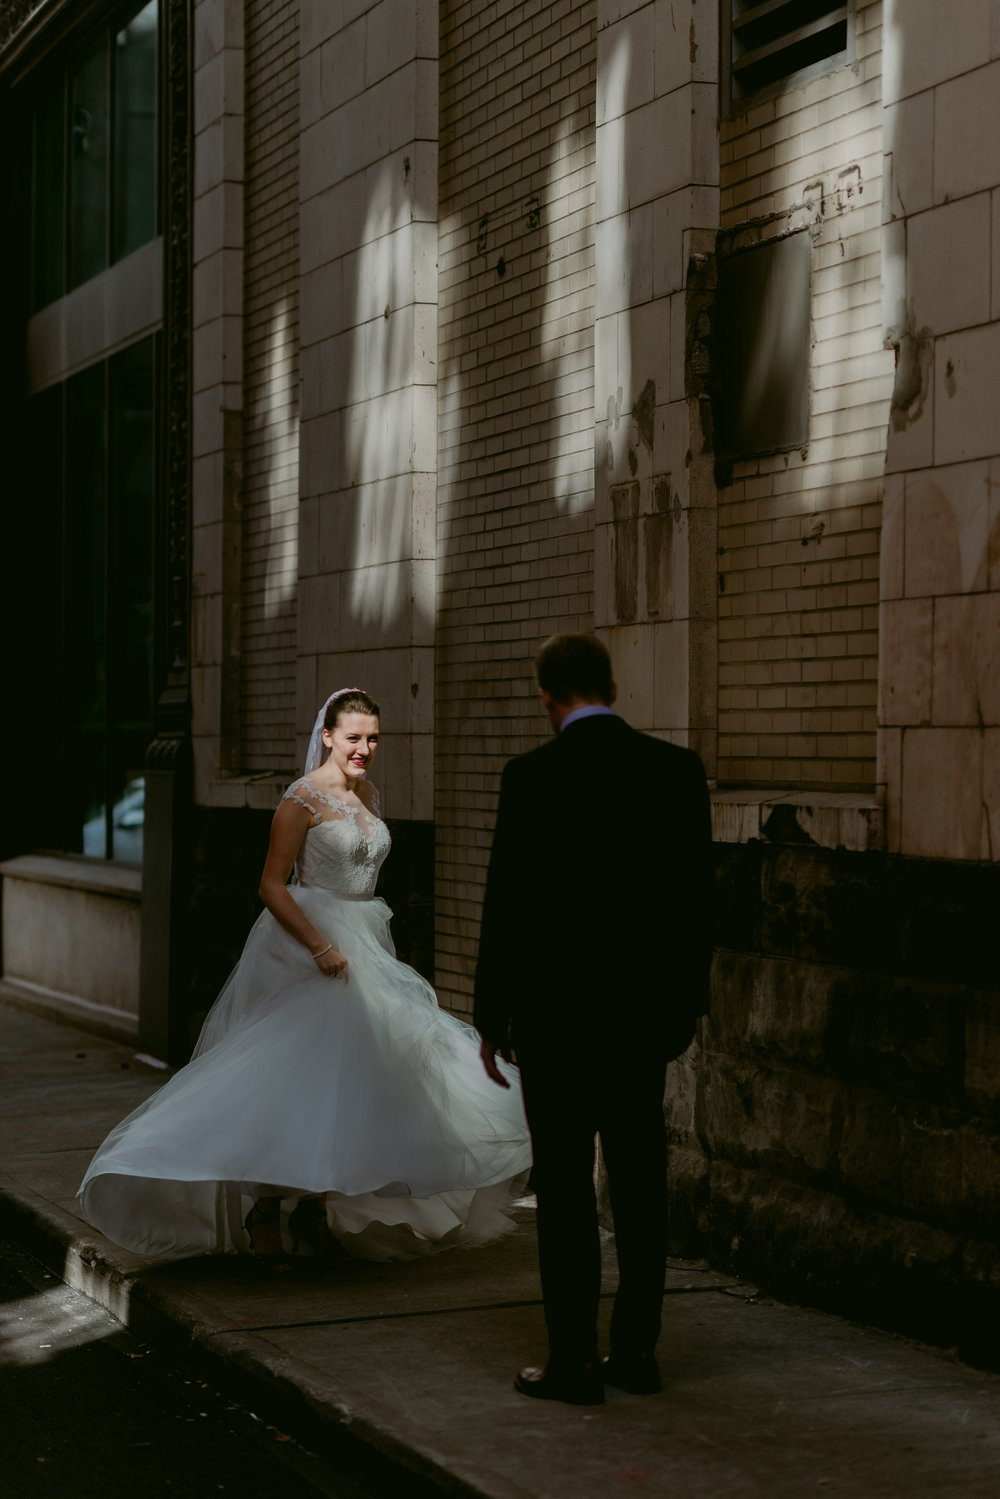 Romantic-Industrial-Warehouse-Wedding_Mallory+Justin-Photographers_0173.jpg